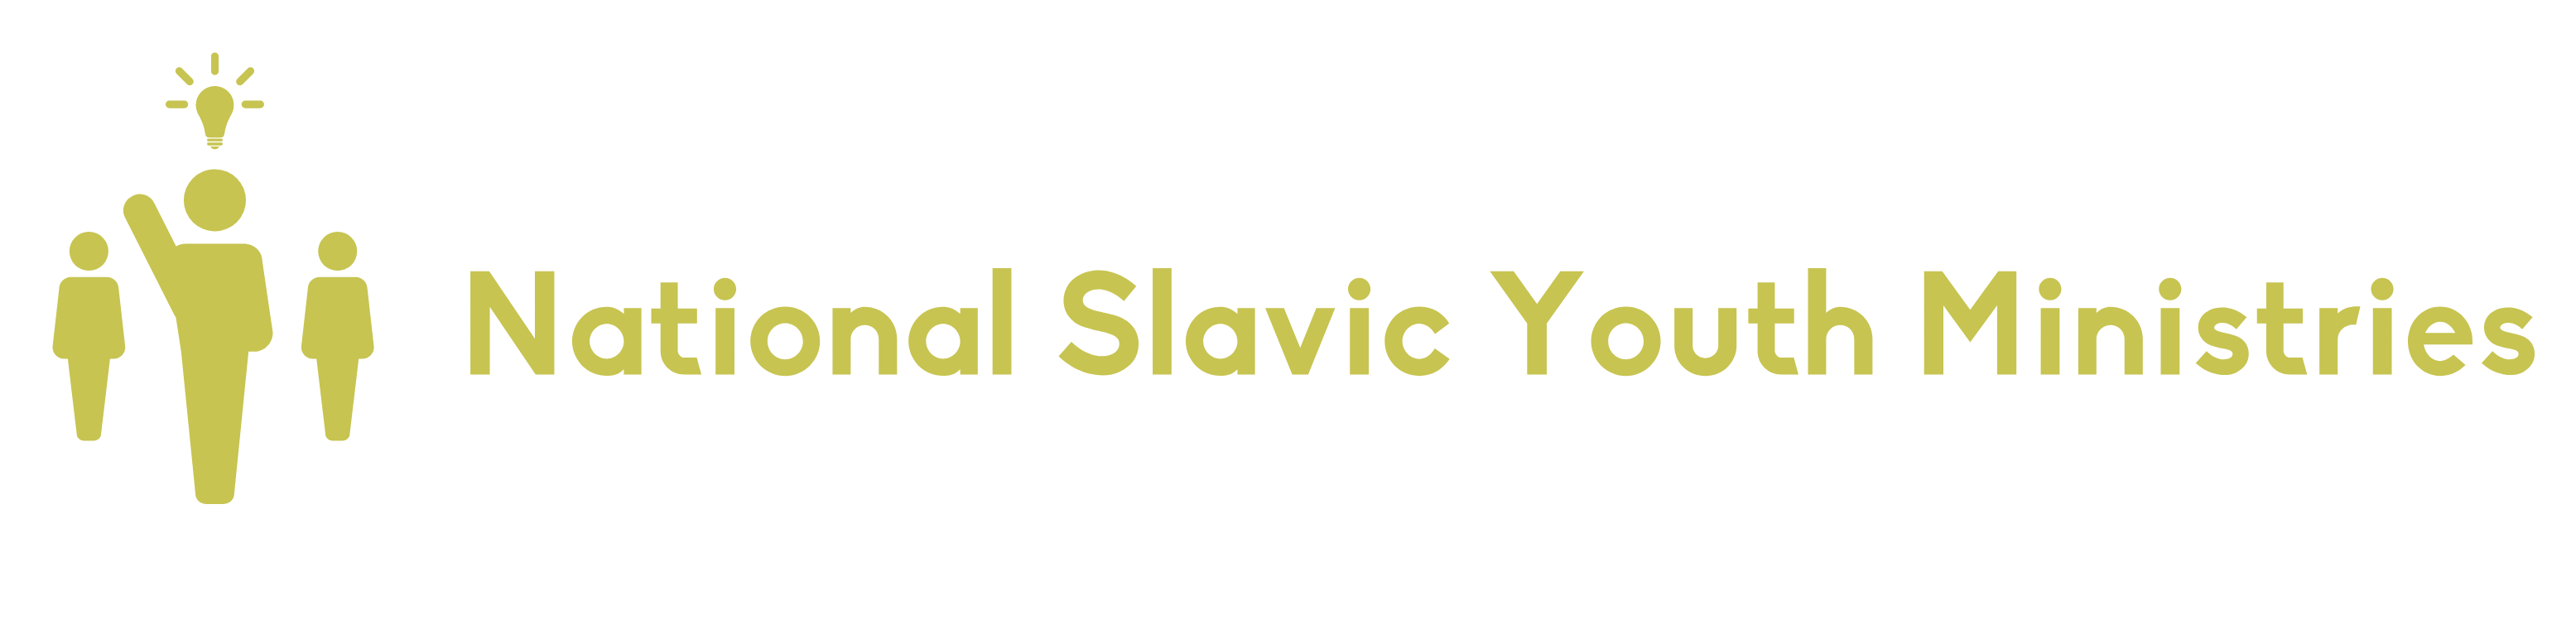 National Slavic Youth Ministries